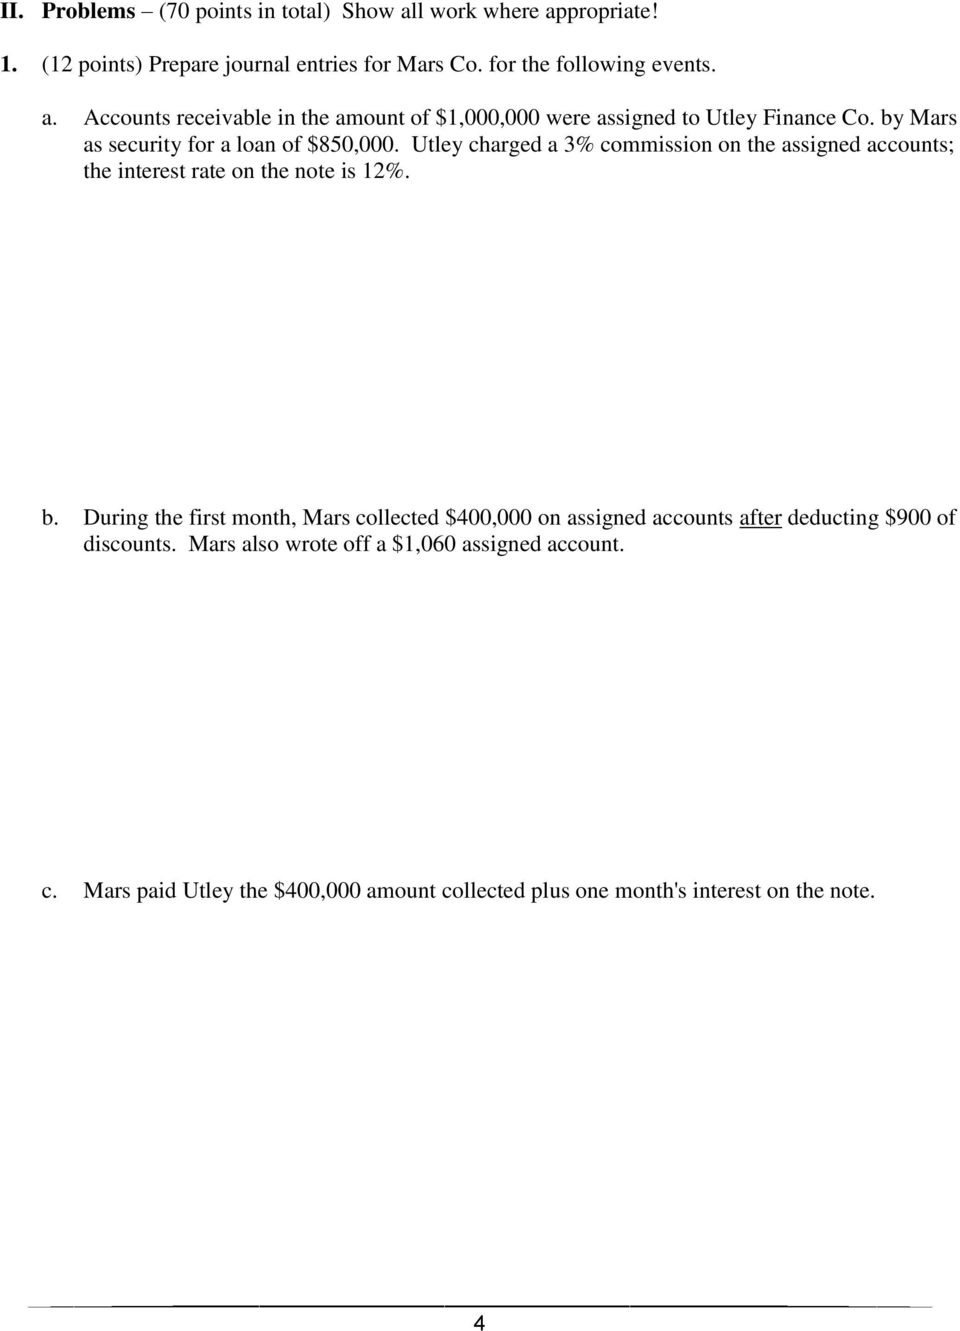 During the first month, Mars collected $400,000 on assigned accounts after deducting $900 of discounts. Mars also wrote off a $1,060 assigned account. c. Mars paid Utley the $400,000 amount collected plus one month's interest on the note.